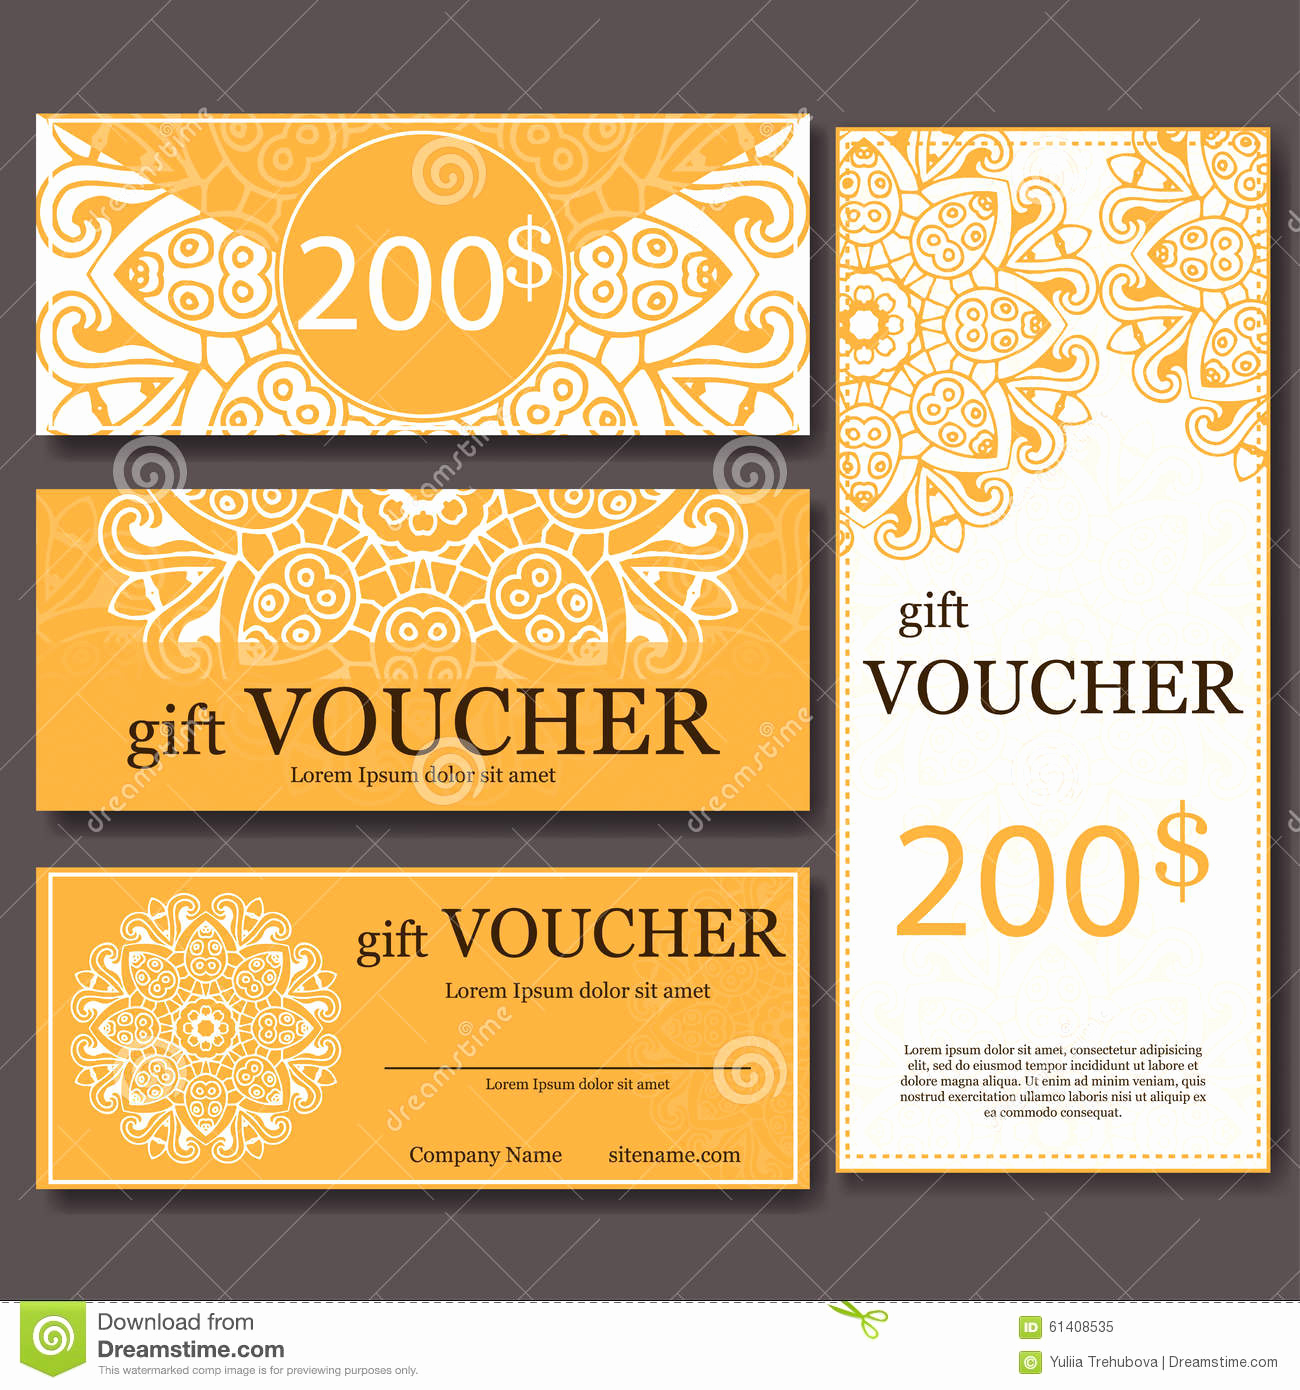 Magazine Subscription Gift Certificate Template Fresh Gift Voucher Template with Mandala Design Certificate for